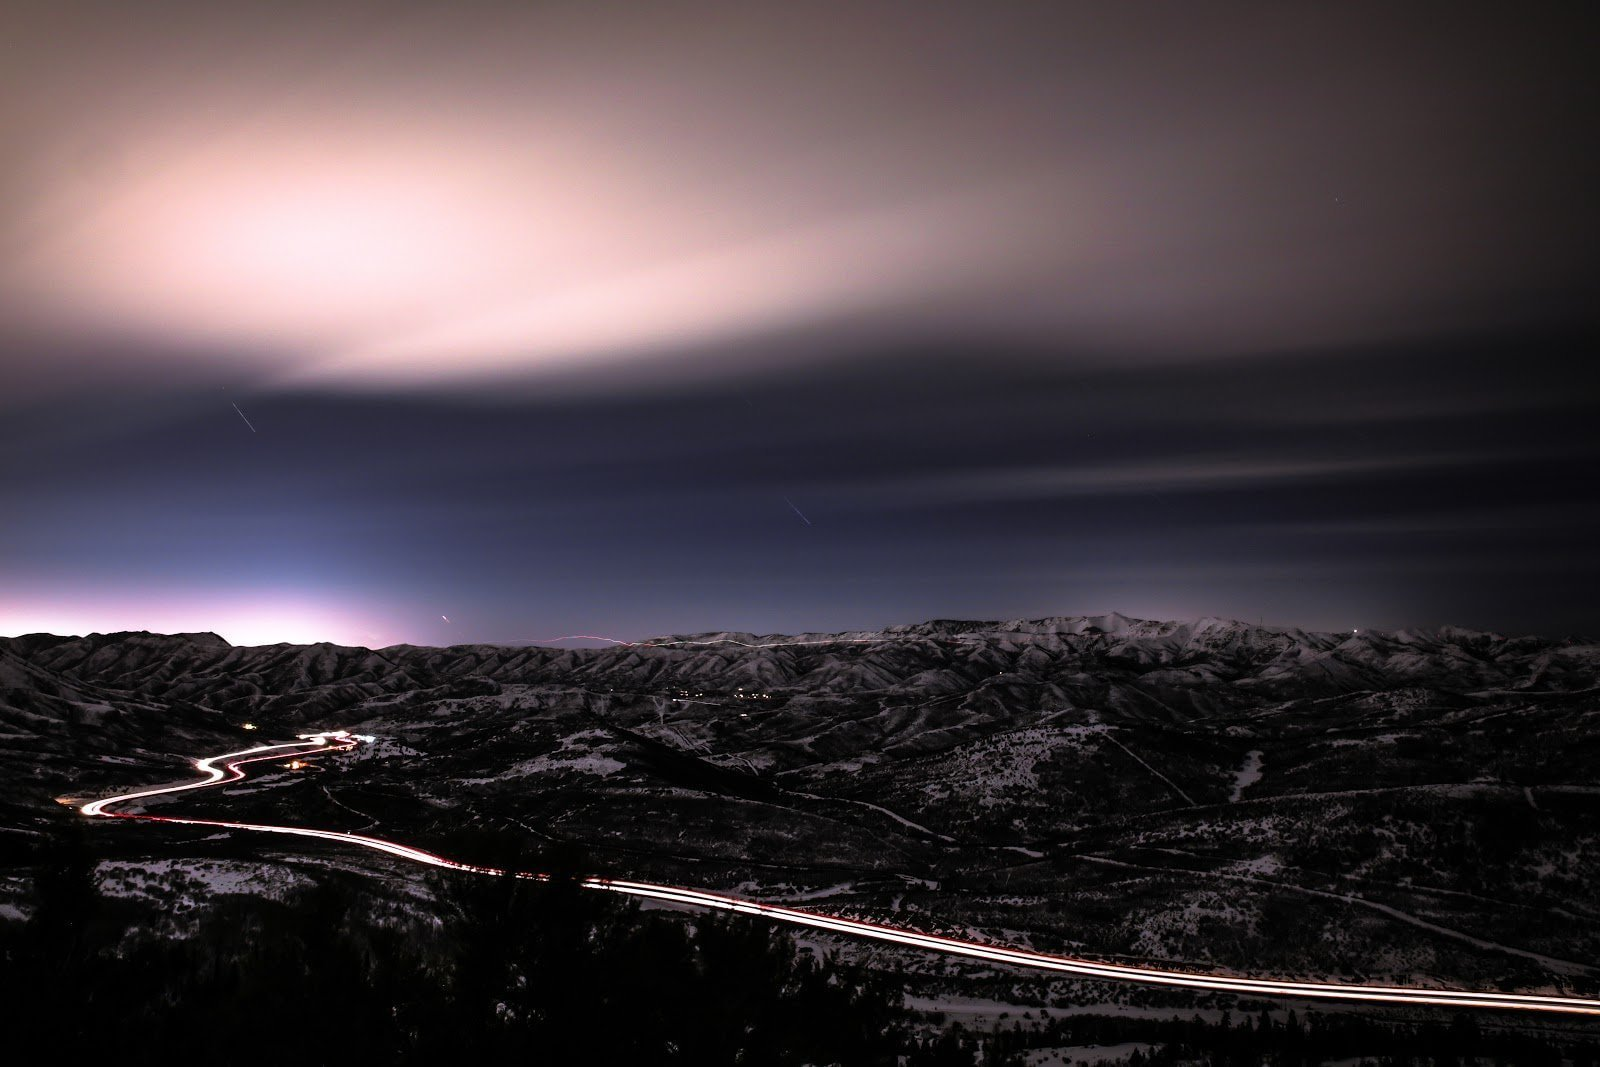 Long exposure of a mountains and a road by Patrick Hendry